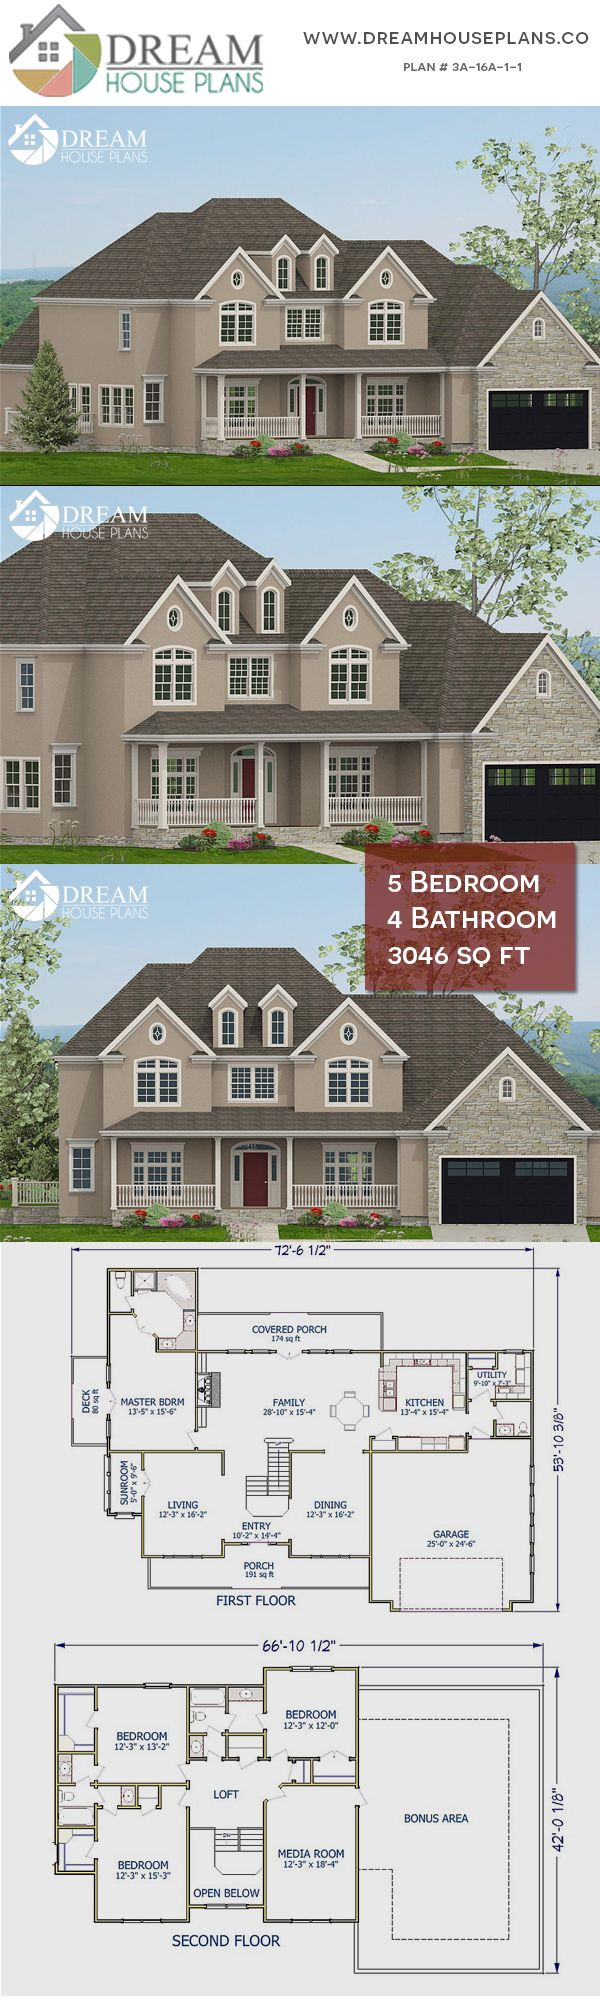 Dream House Plans Affordable Yet Luxury Southern 5 Bedroom 3046 Sq Ft House Plan With Basement Op Southern House Plans New House Plans Dream House Plans